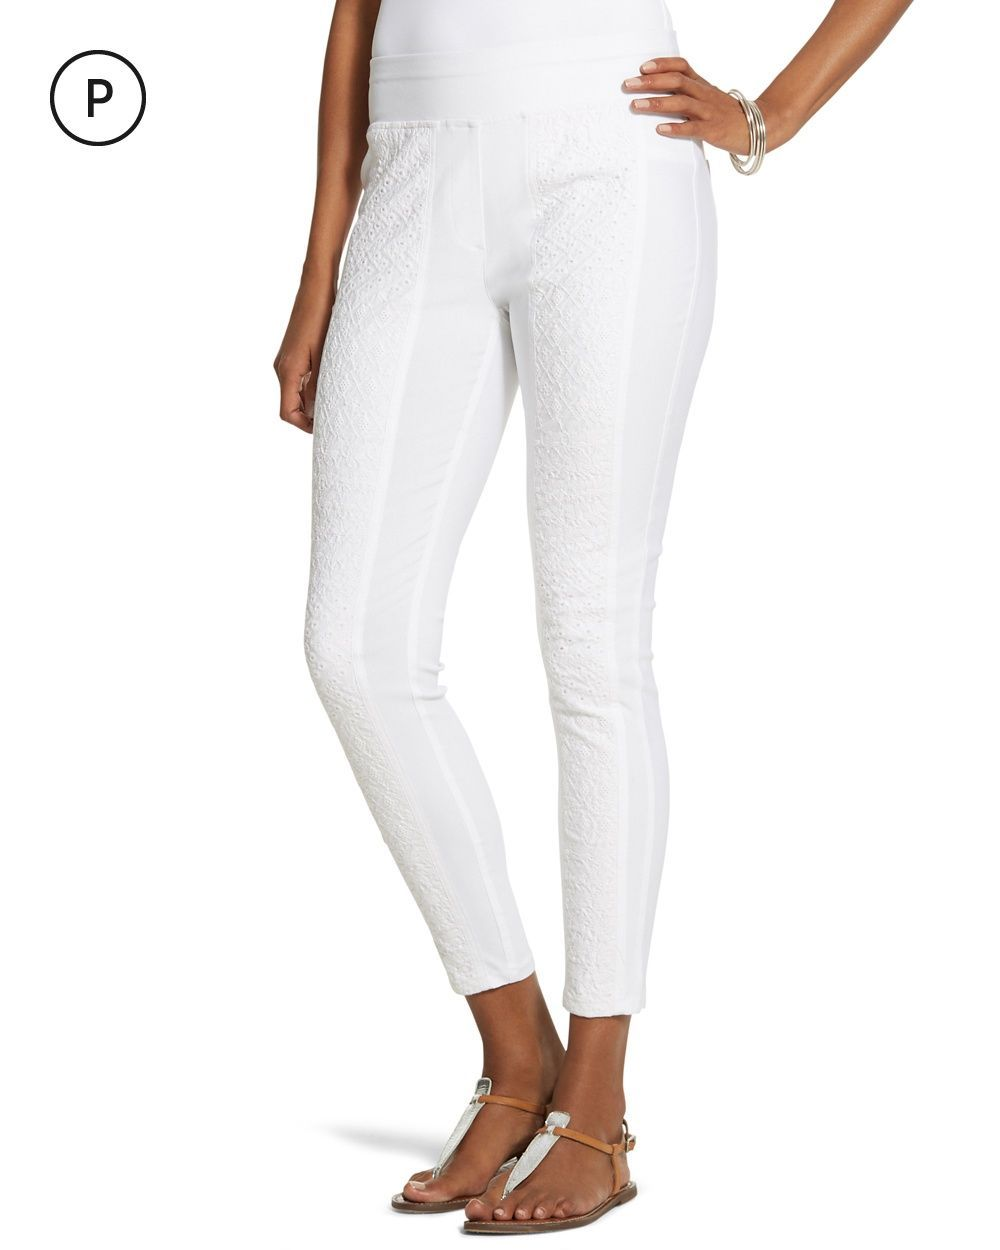 Chico's Women's Petite Embroidered Stretch Slim-Fit Pants